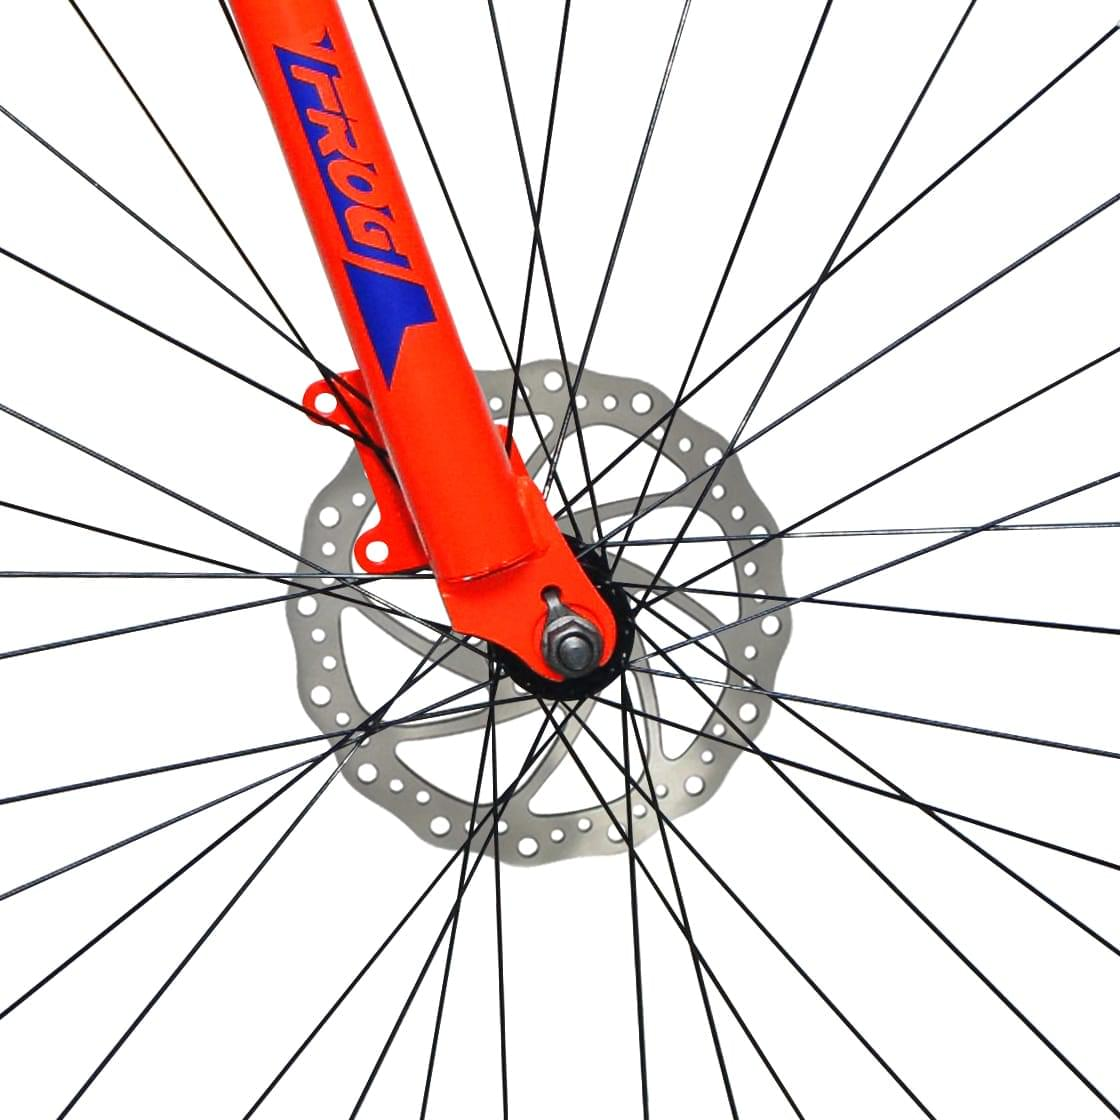 Hermes 26 Blue Orange (Disc-Brakes) image 3